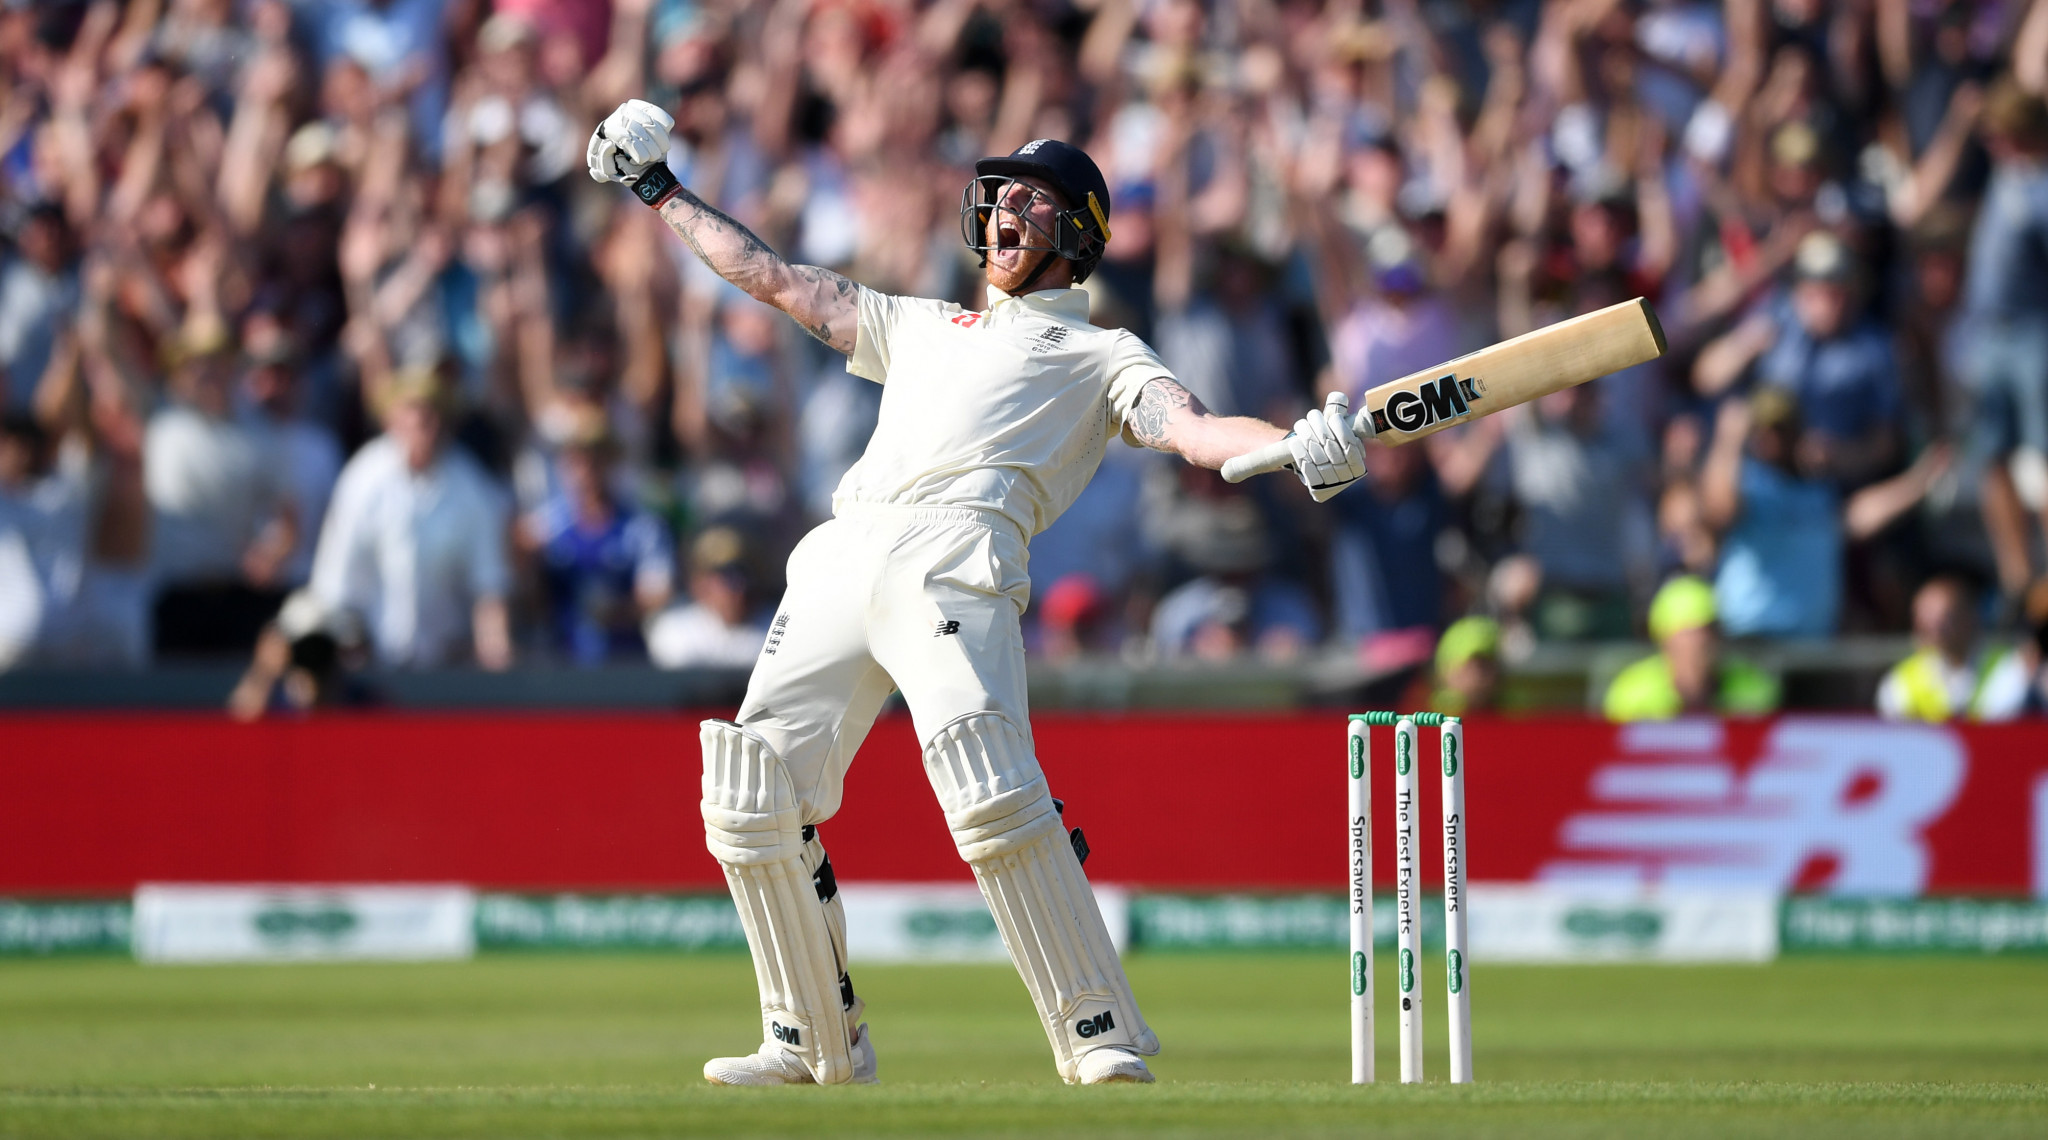 One of the iconic moments of the sporting year - Ben Stokes at Headingley, delivering England the third Ashes test almost single-handedly ©Getty Images